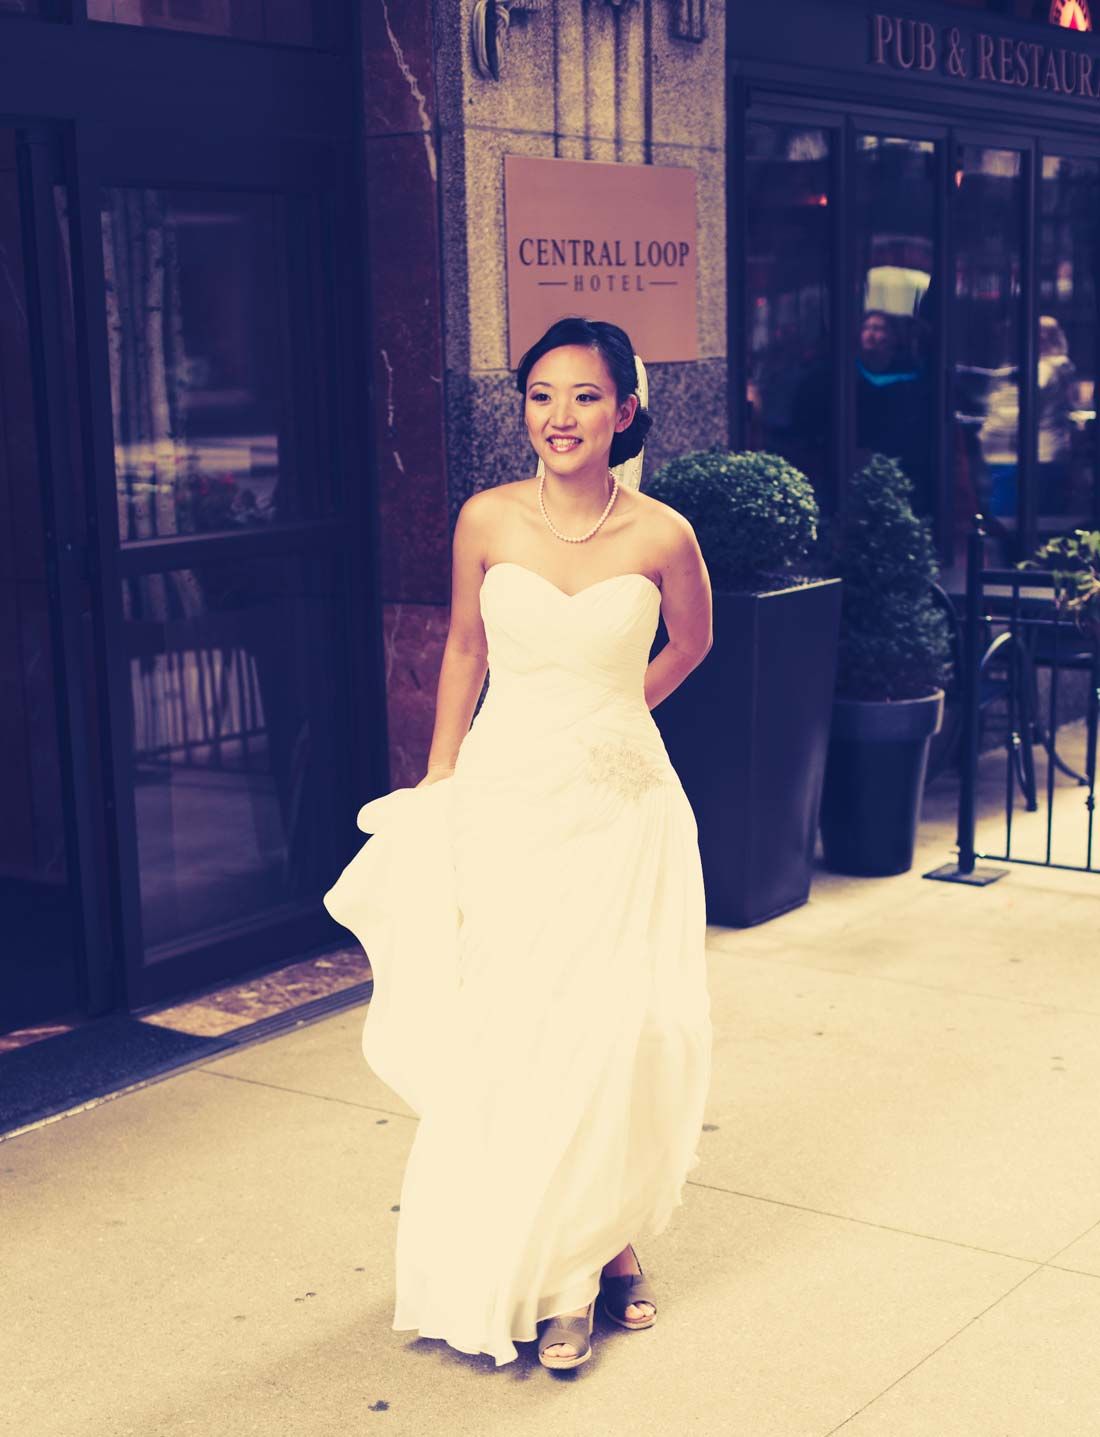 Logan Square Chicago Wedding Photography Kathy Rich (4)